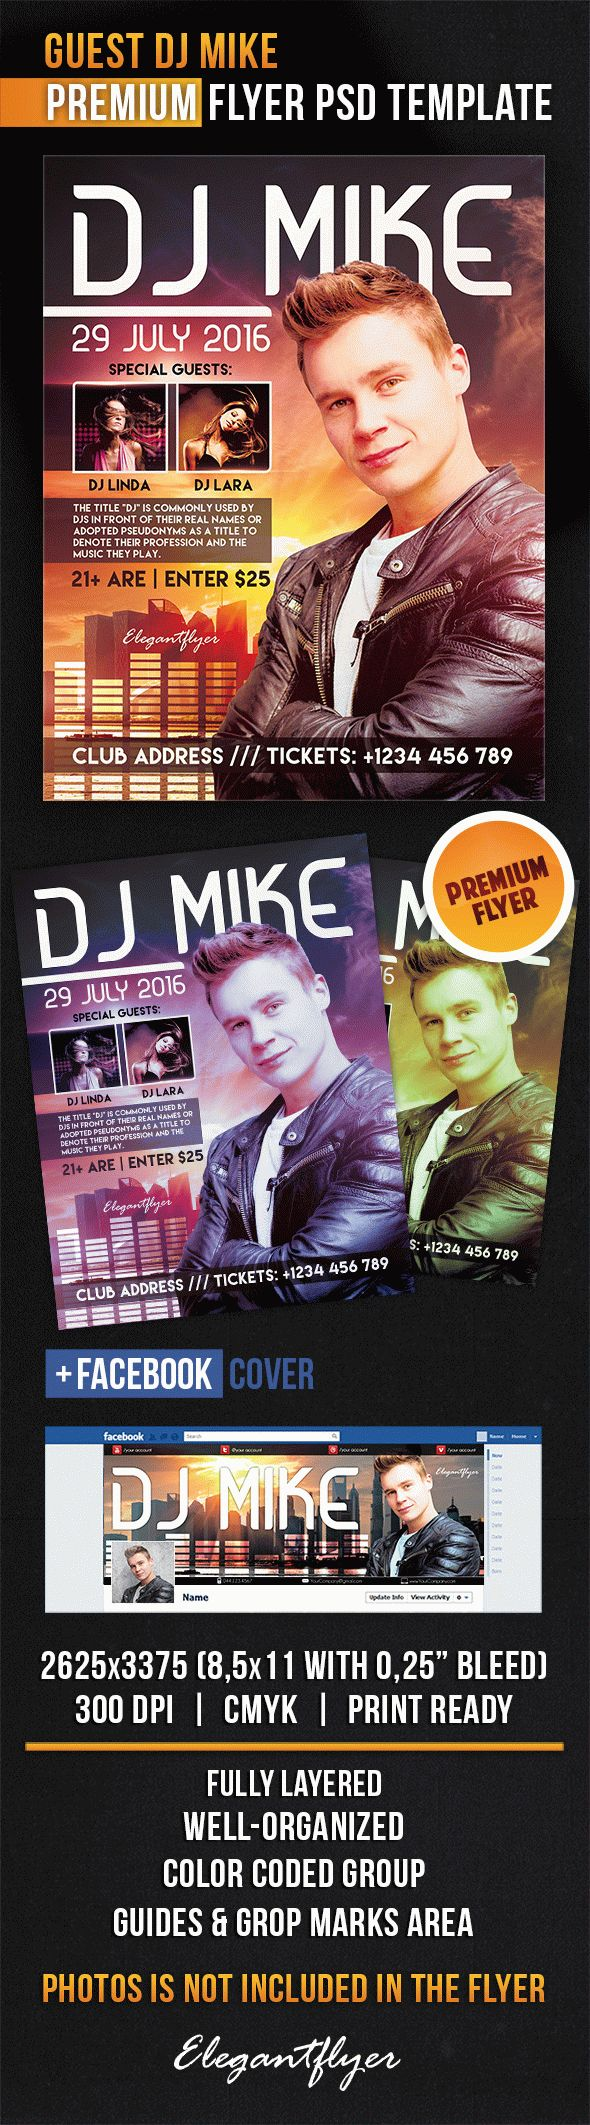 Guest Dj Mike – Flyer PSD Template